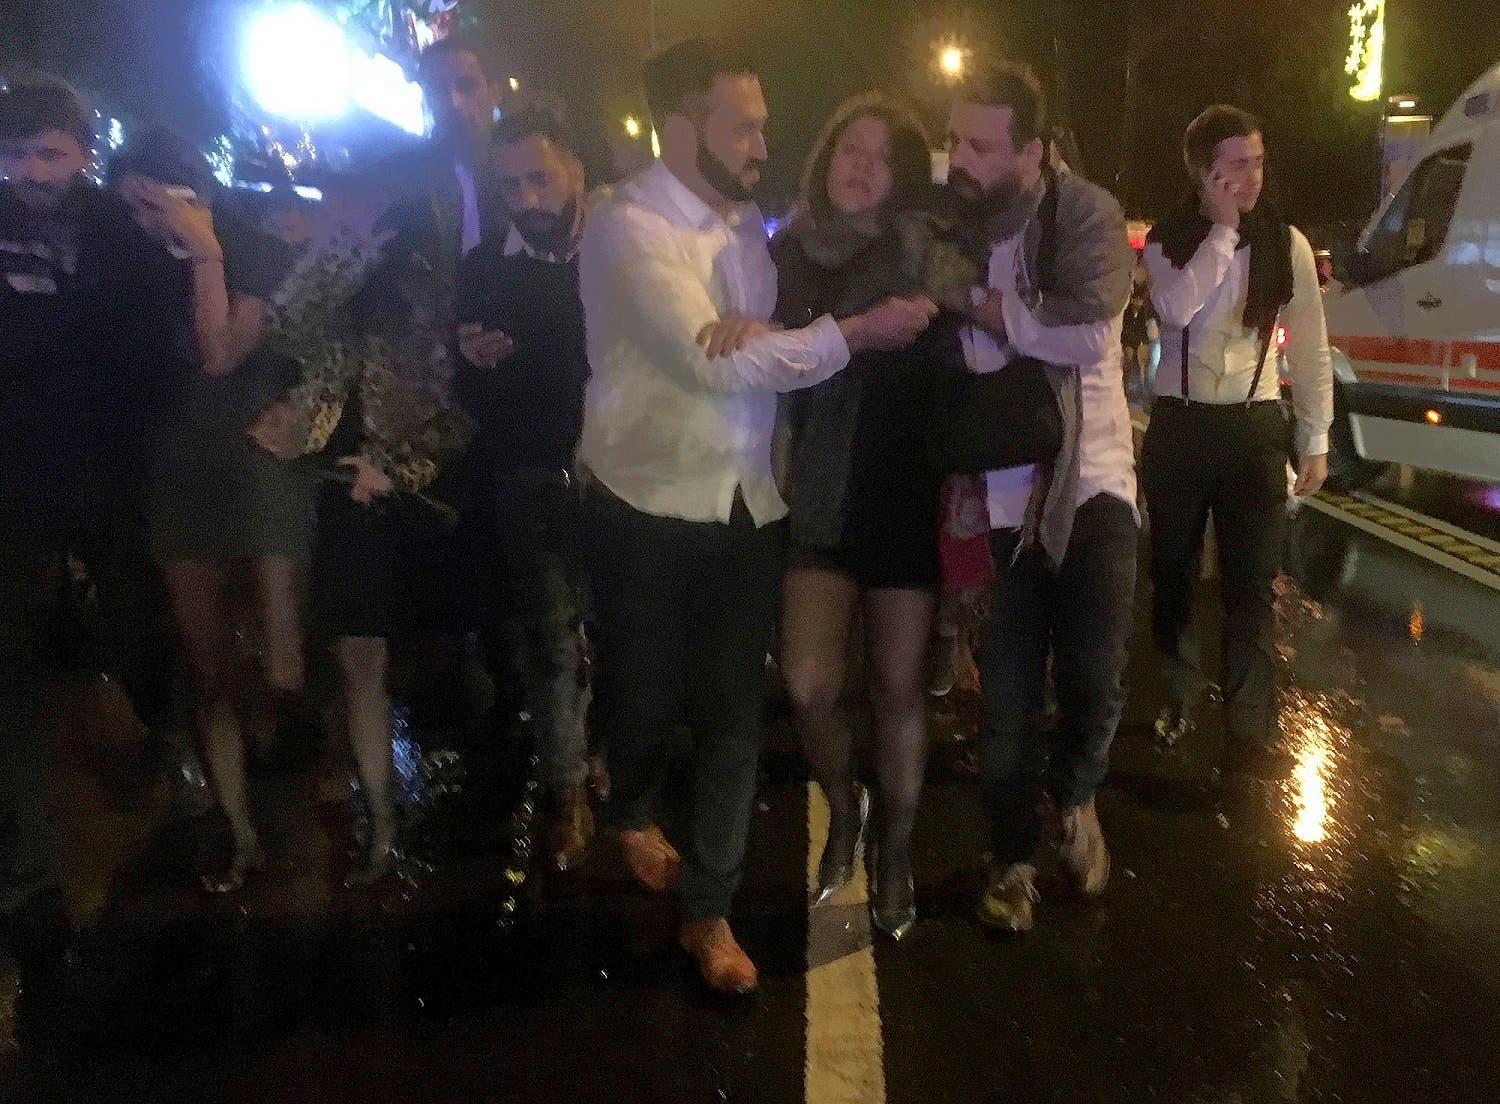 People leave the nightclub, the scene of an attack in Istanbul, early Sunday, Jan. 1, 2017 (DHA-Depo Photos via AP)